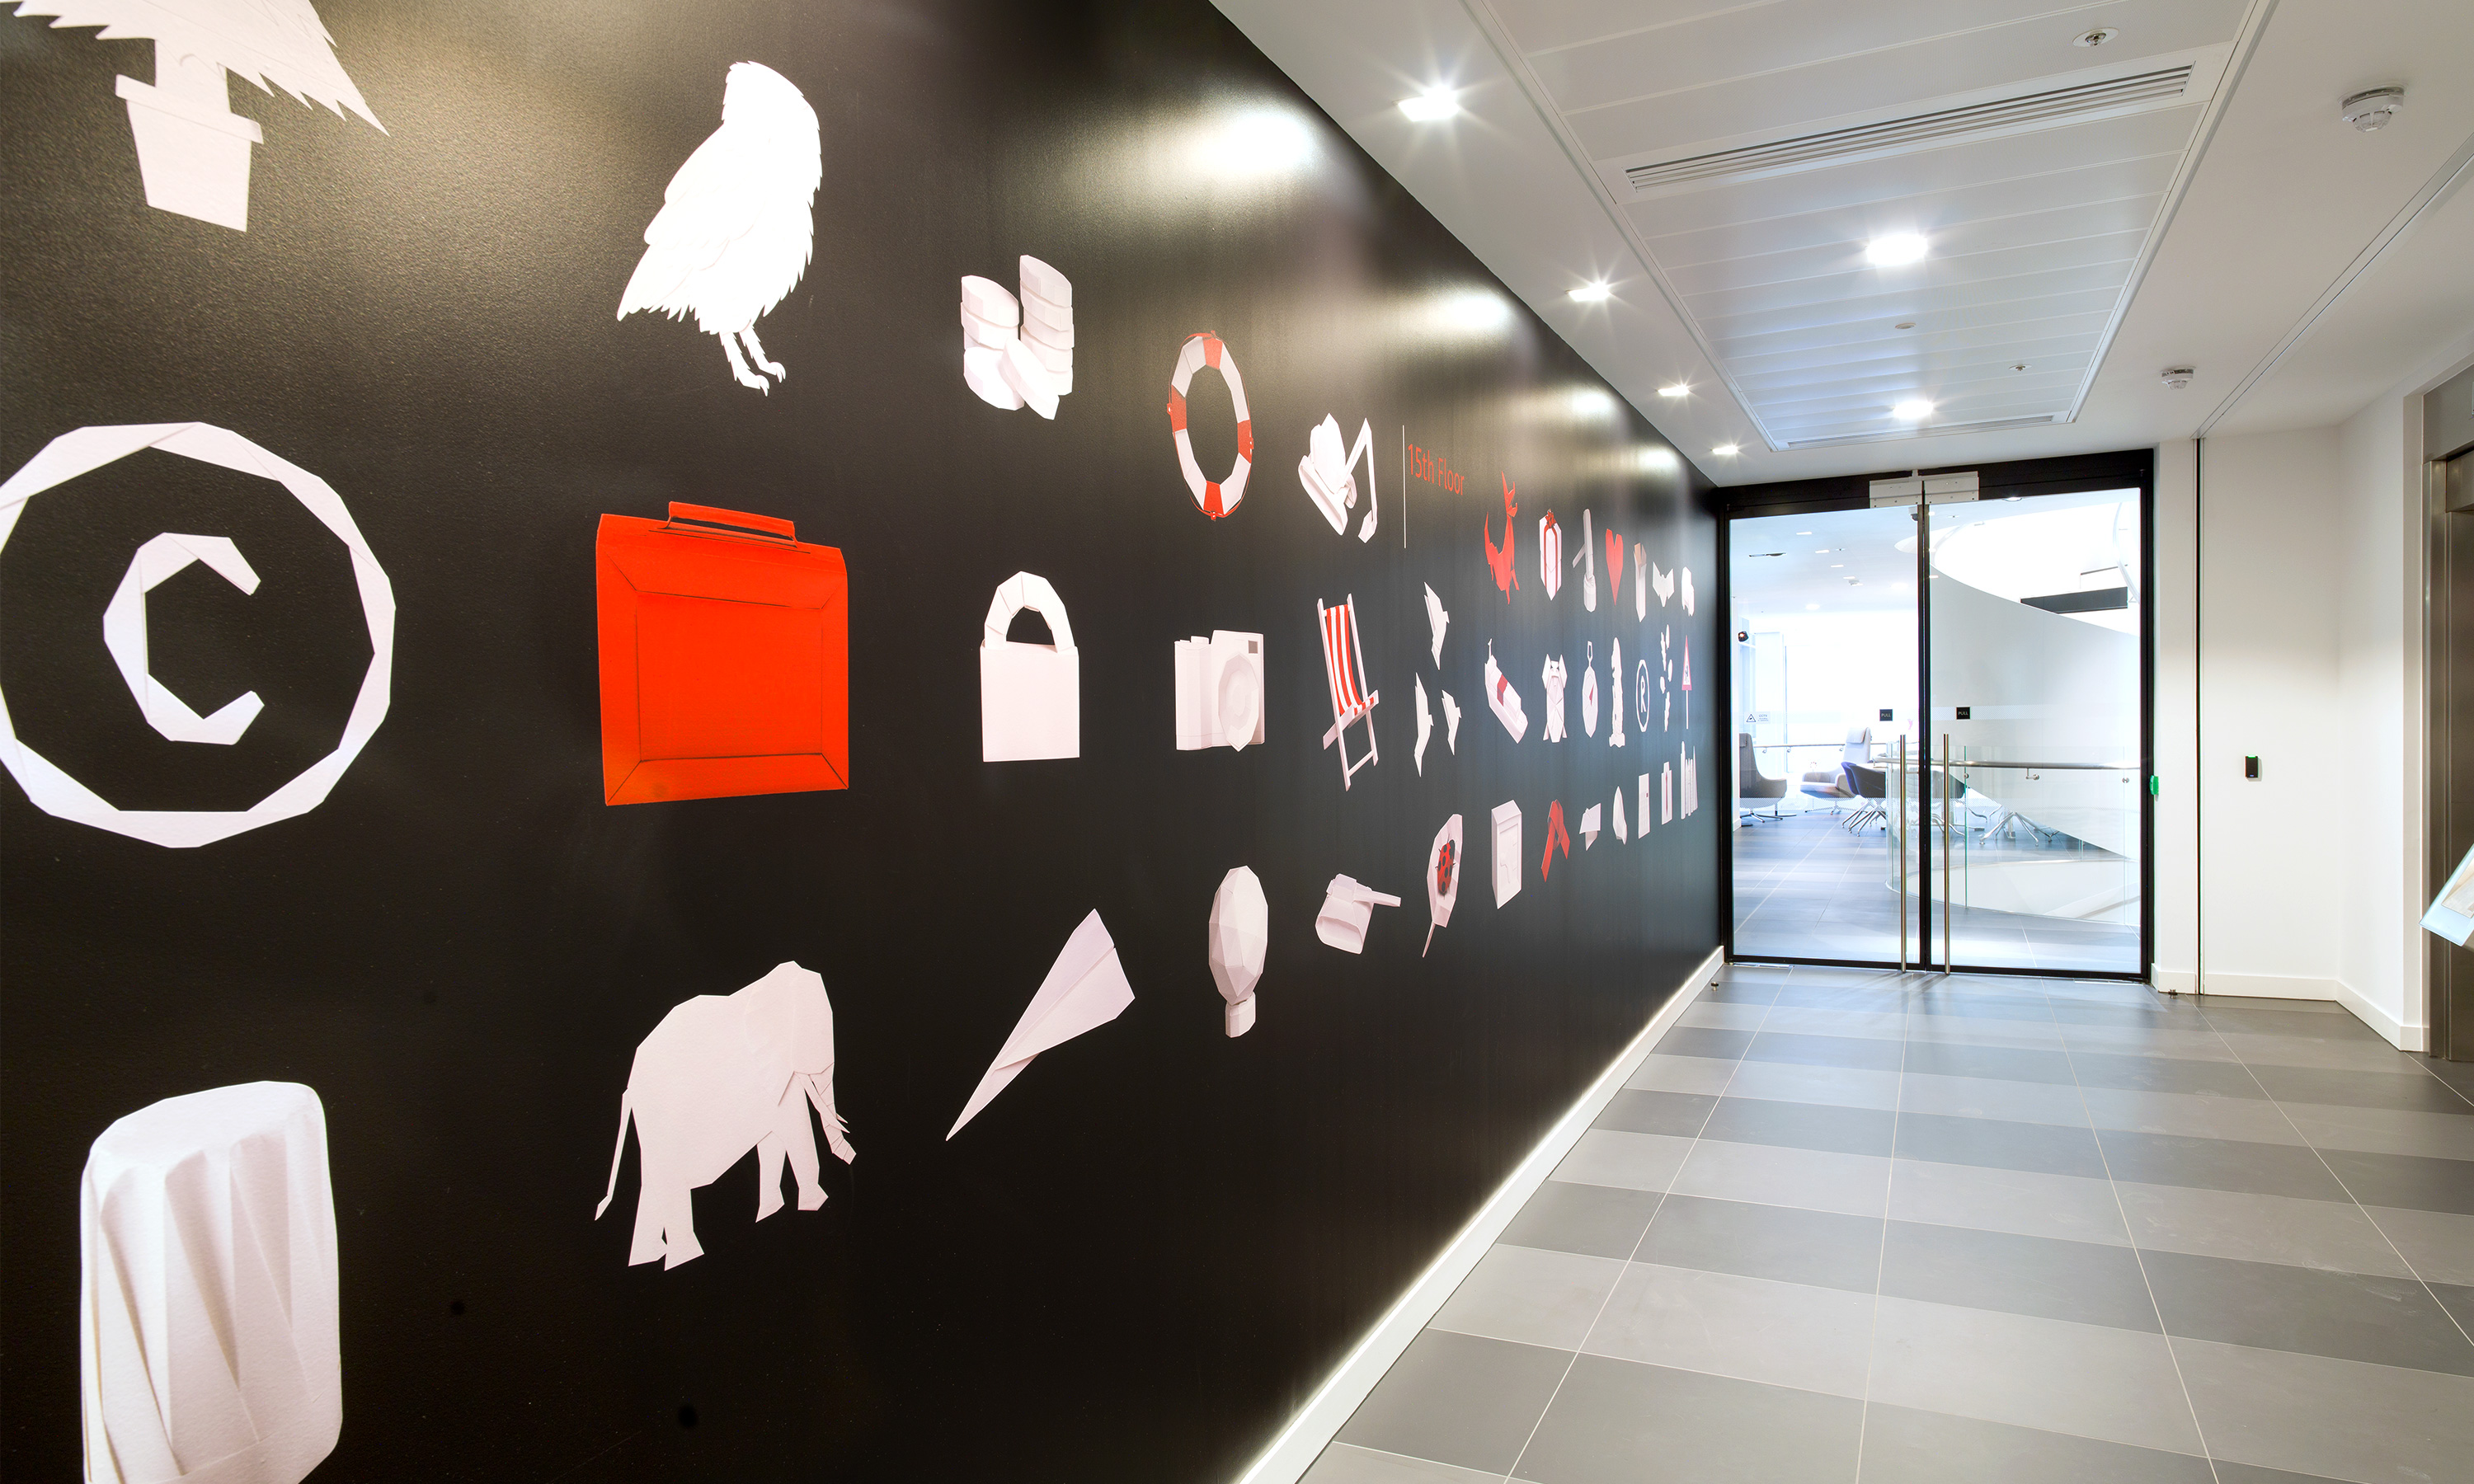 Branding by Neon - Nabarro Law Firm - Law sector branding - 125 London Wall Lift Lobby - origami gallery graphics designed by Dana Robertson